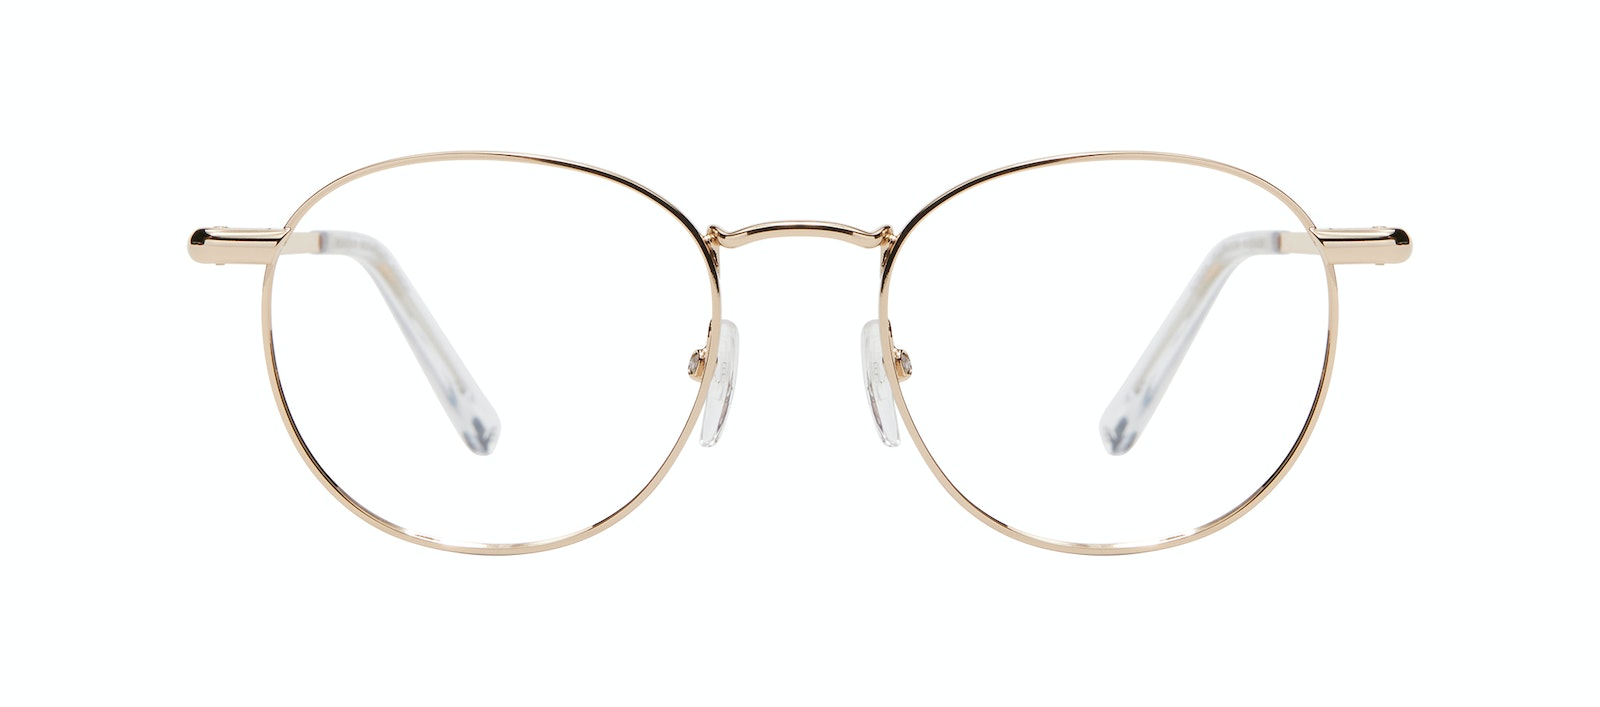 Affordable Fashion Glasses Round Eyeglasses Women Divine M Gold Front